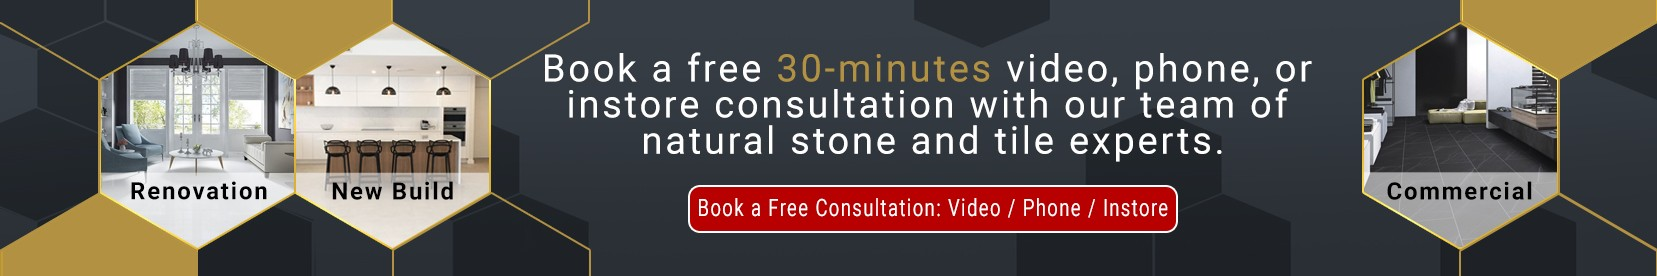 Book a Free Consultation with our team